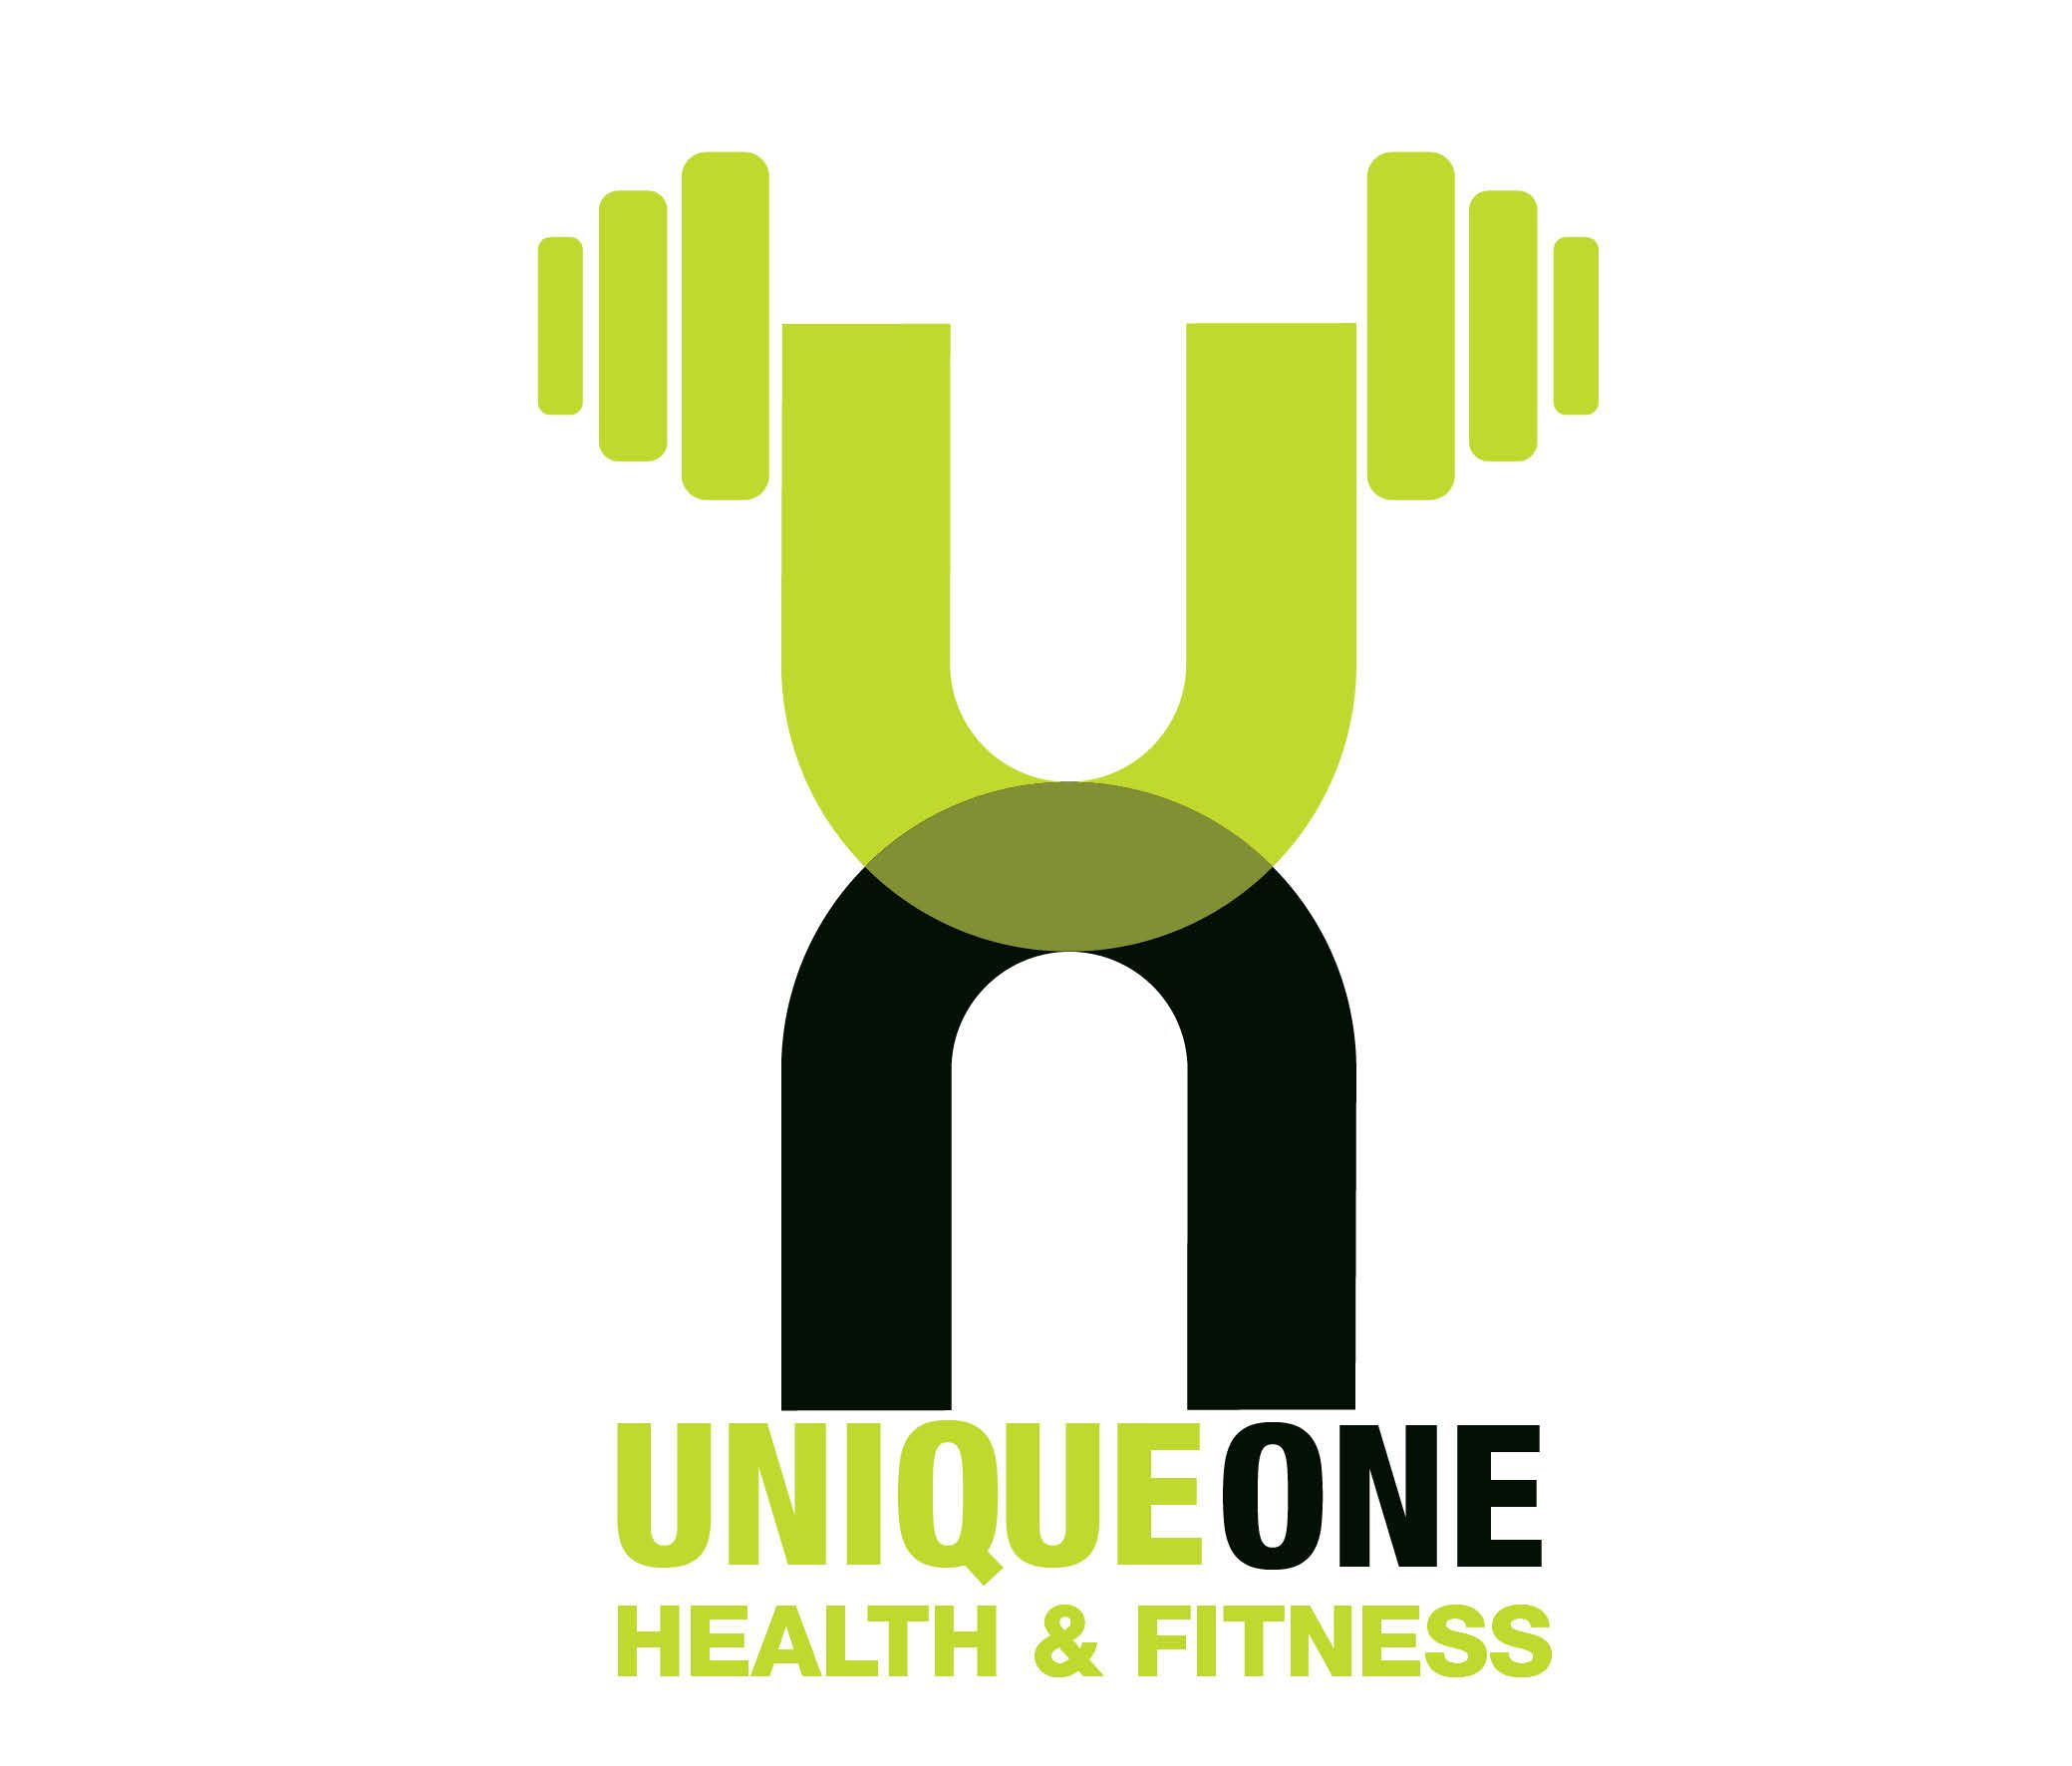 Fitness gym logo   My Work   Pinterest   Gym logo, Logos and ... for Health And Fitness Logo Samples  157uhy